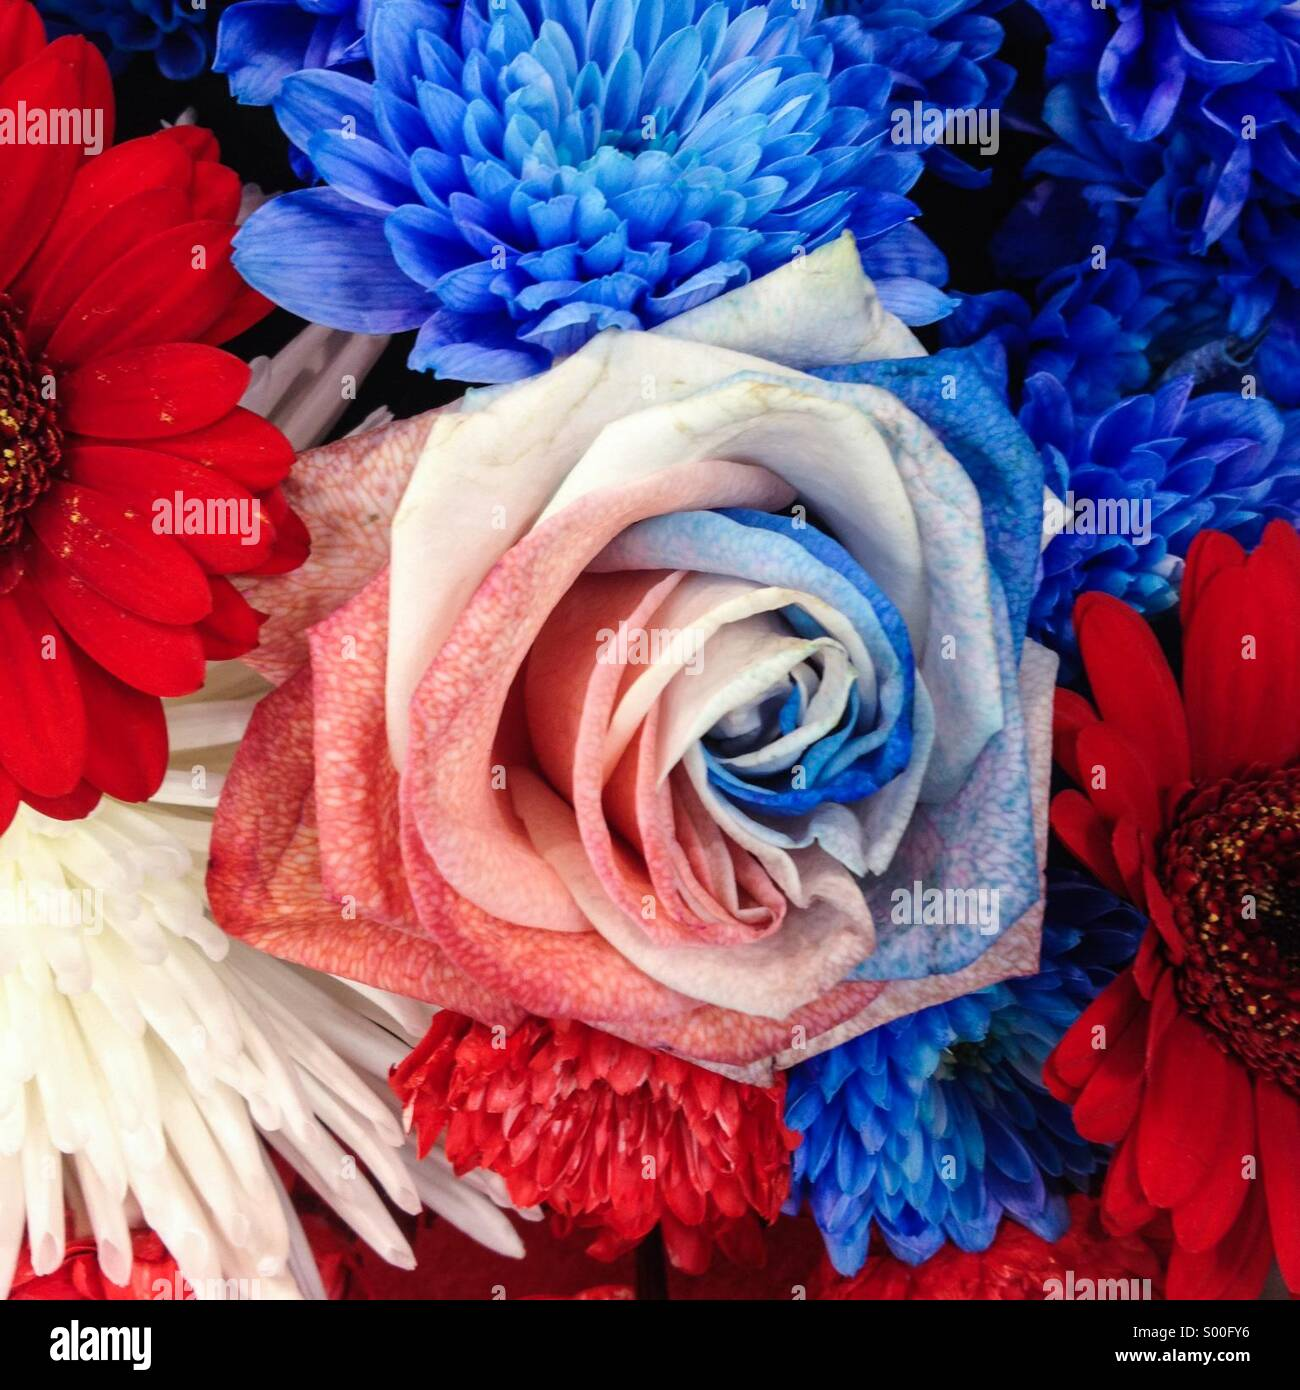 Red white and blue rose flower stock photo 309799146 alamy red white and blue rose flower mightylinksfo Choice Image